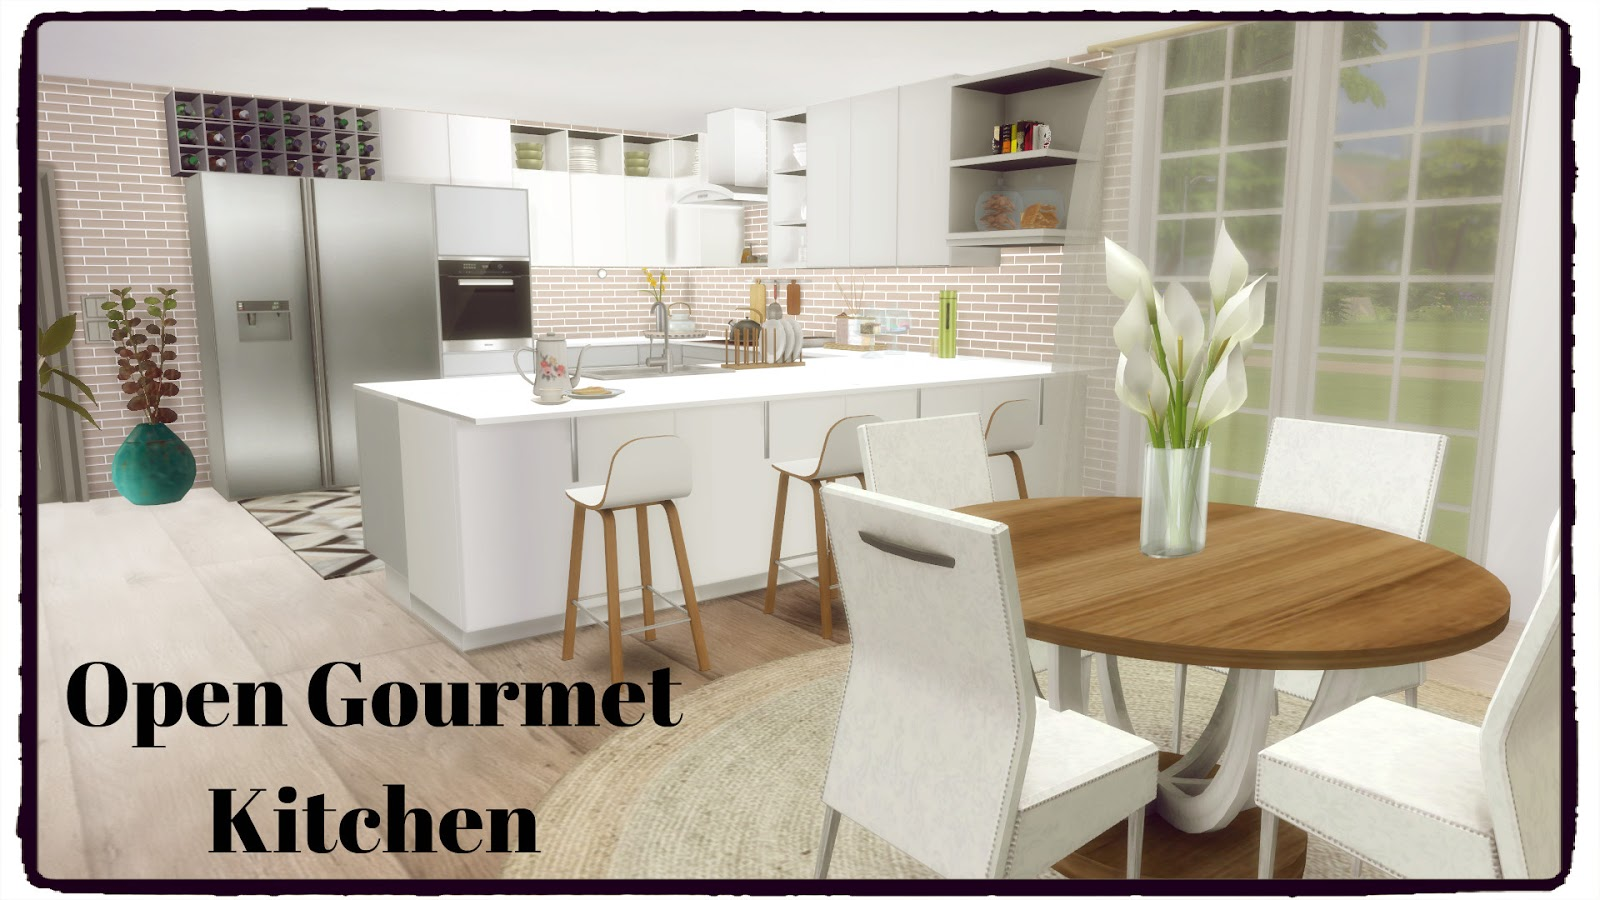 Open gourmet kitchen by Dinha Gamer